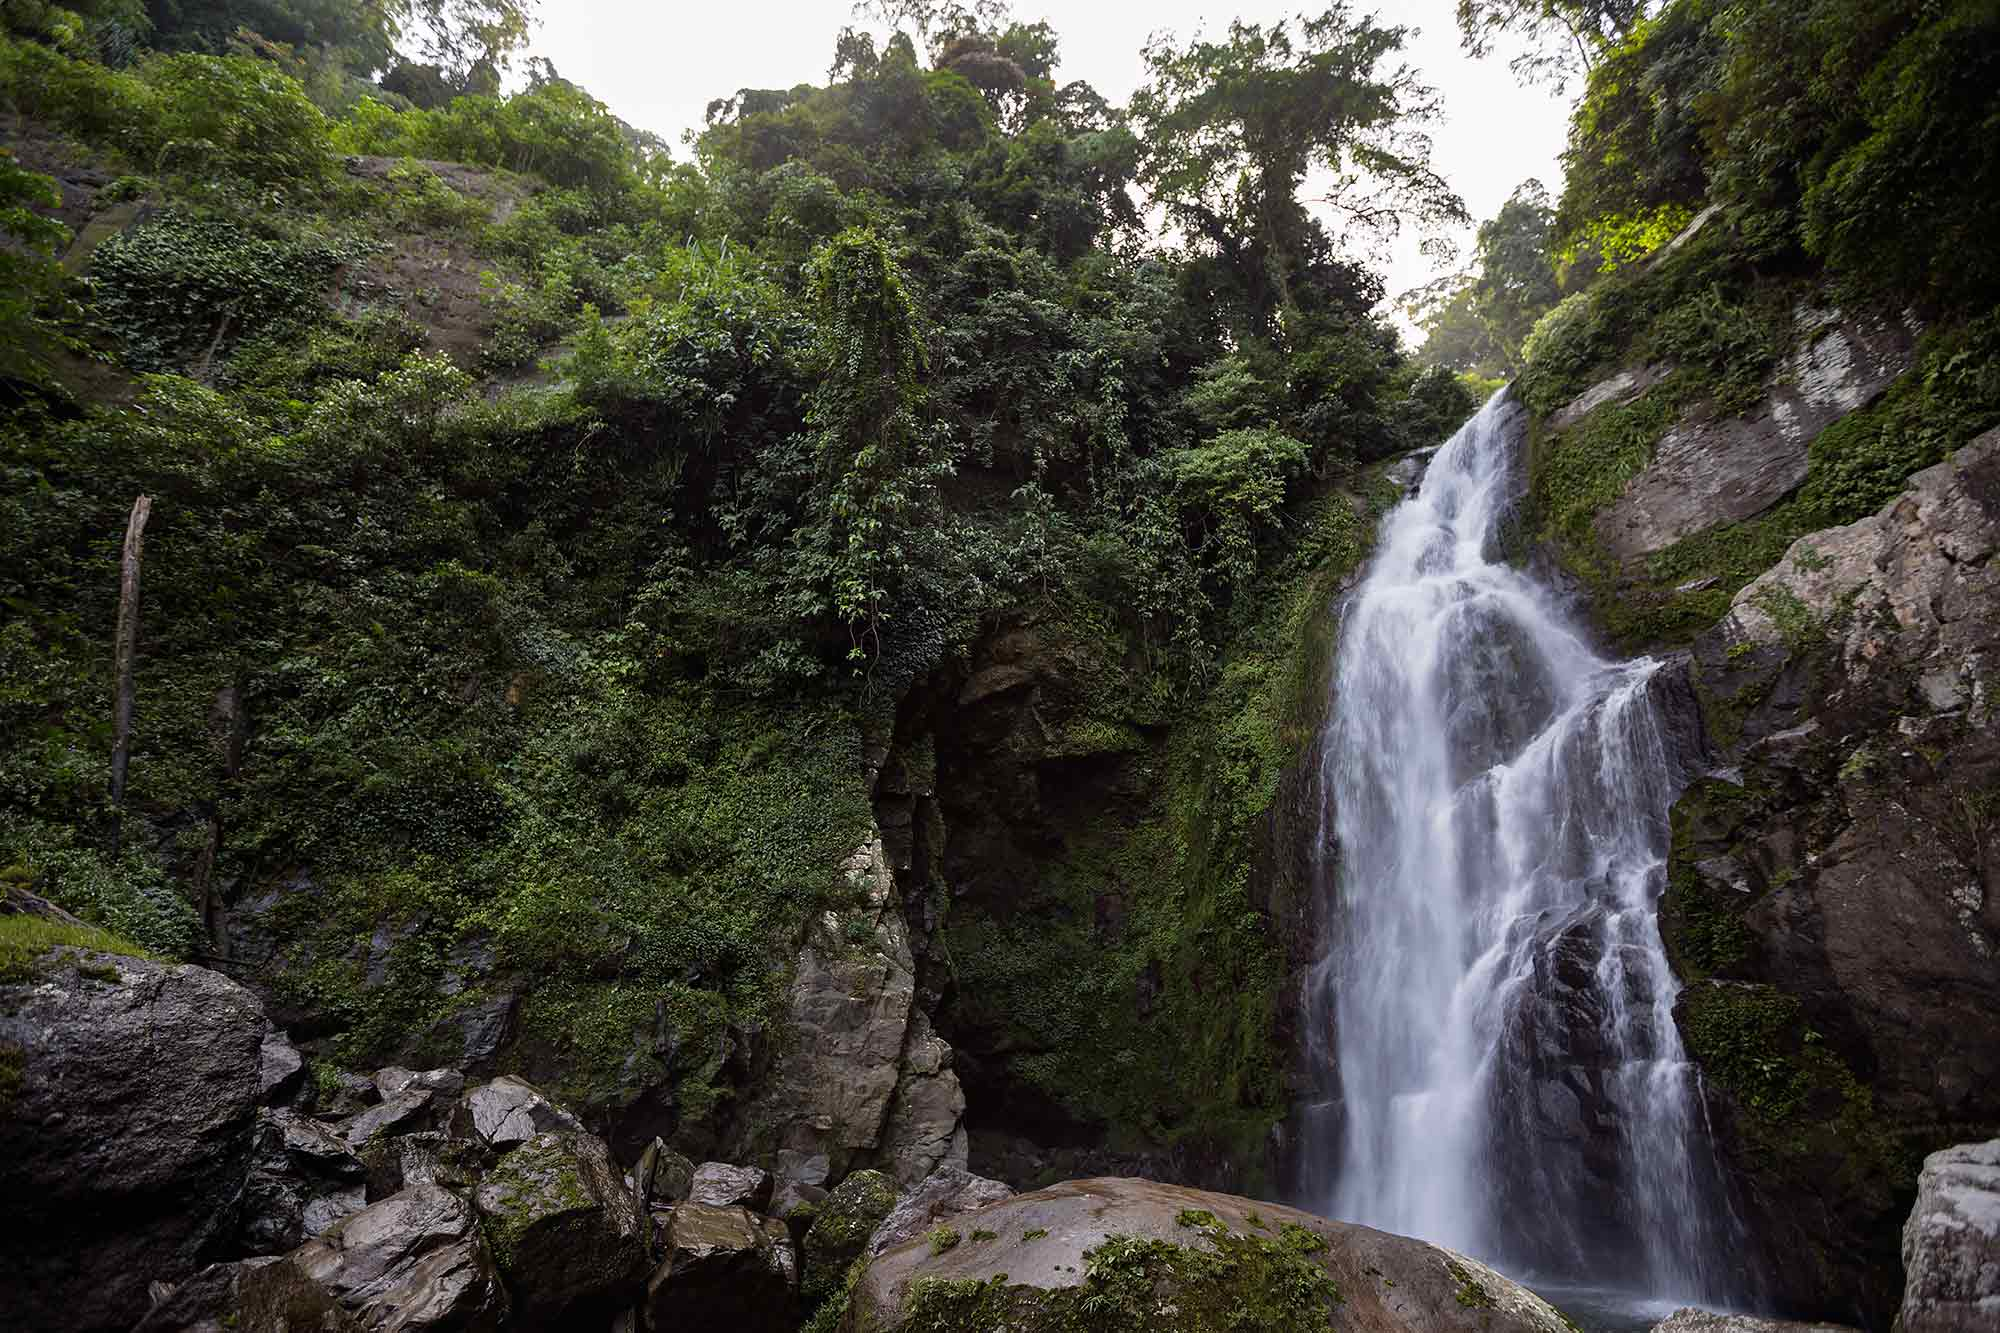 A waterfall in West Sumatra, Indonesia. It was the most horrible walk of my life, with hundreds of leeches crawling on the ground. © Ulli Maier & Nisa Maier